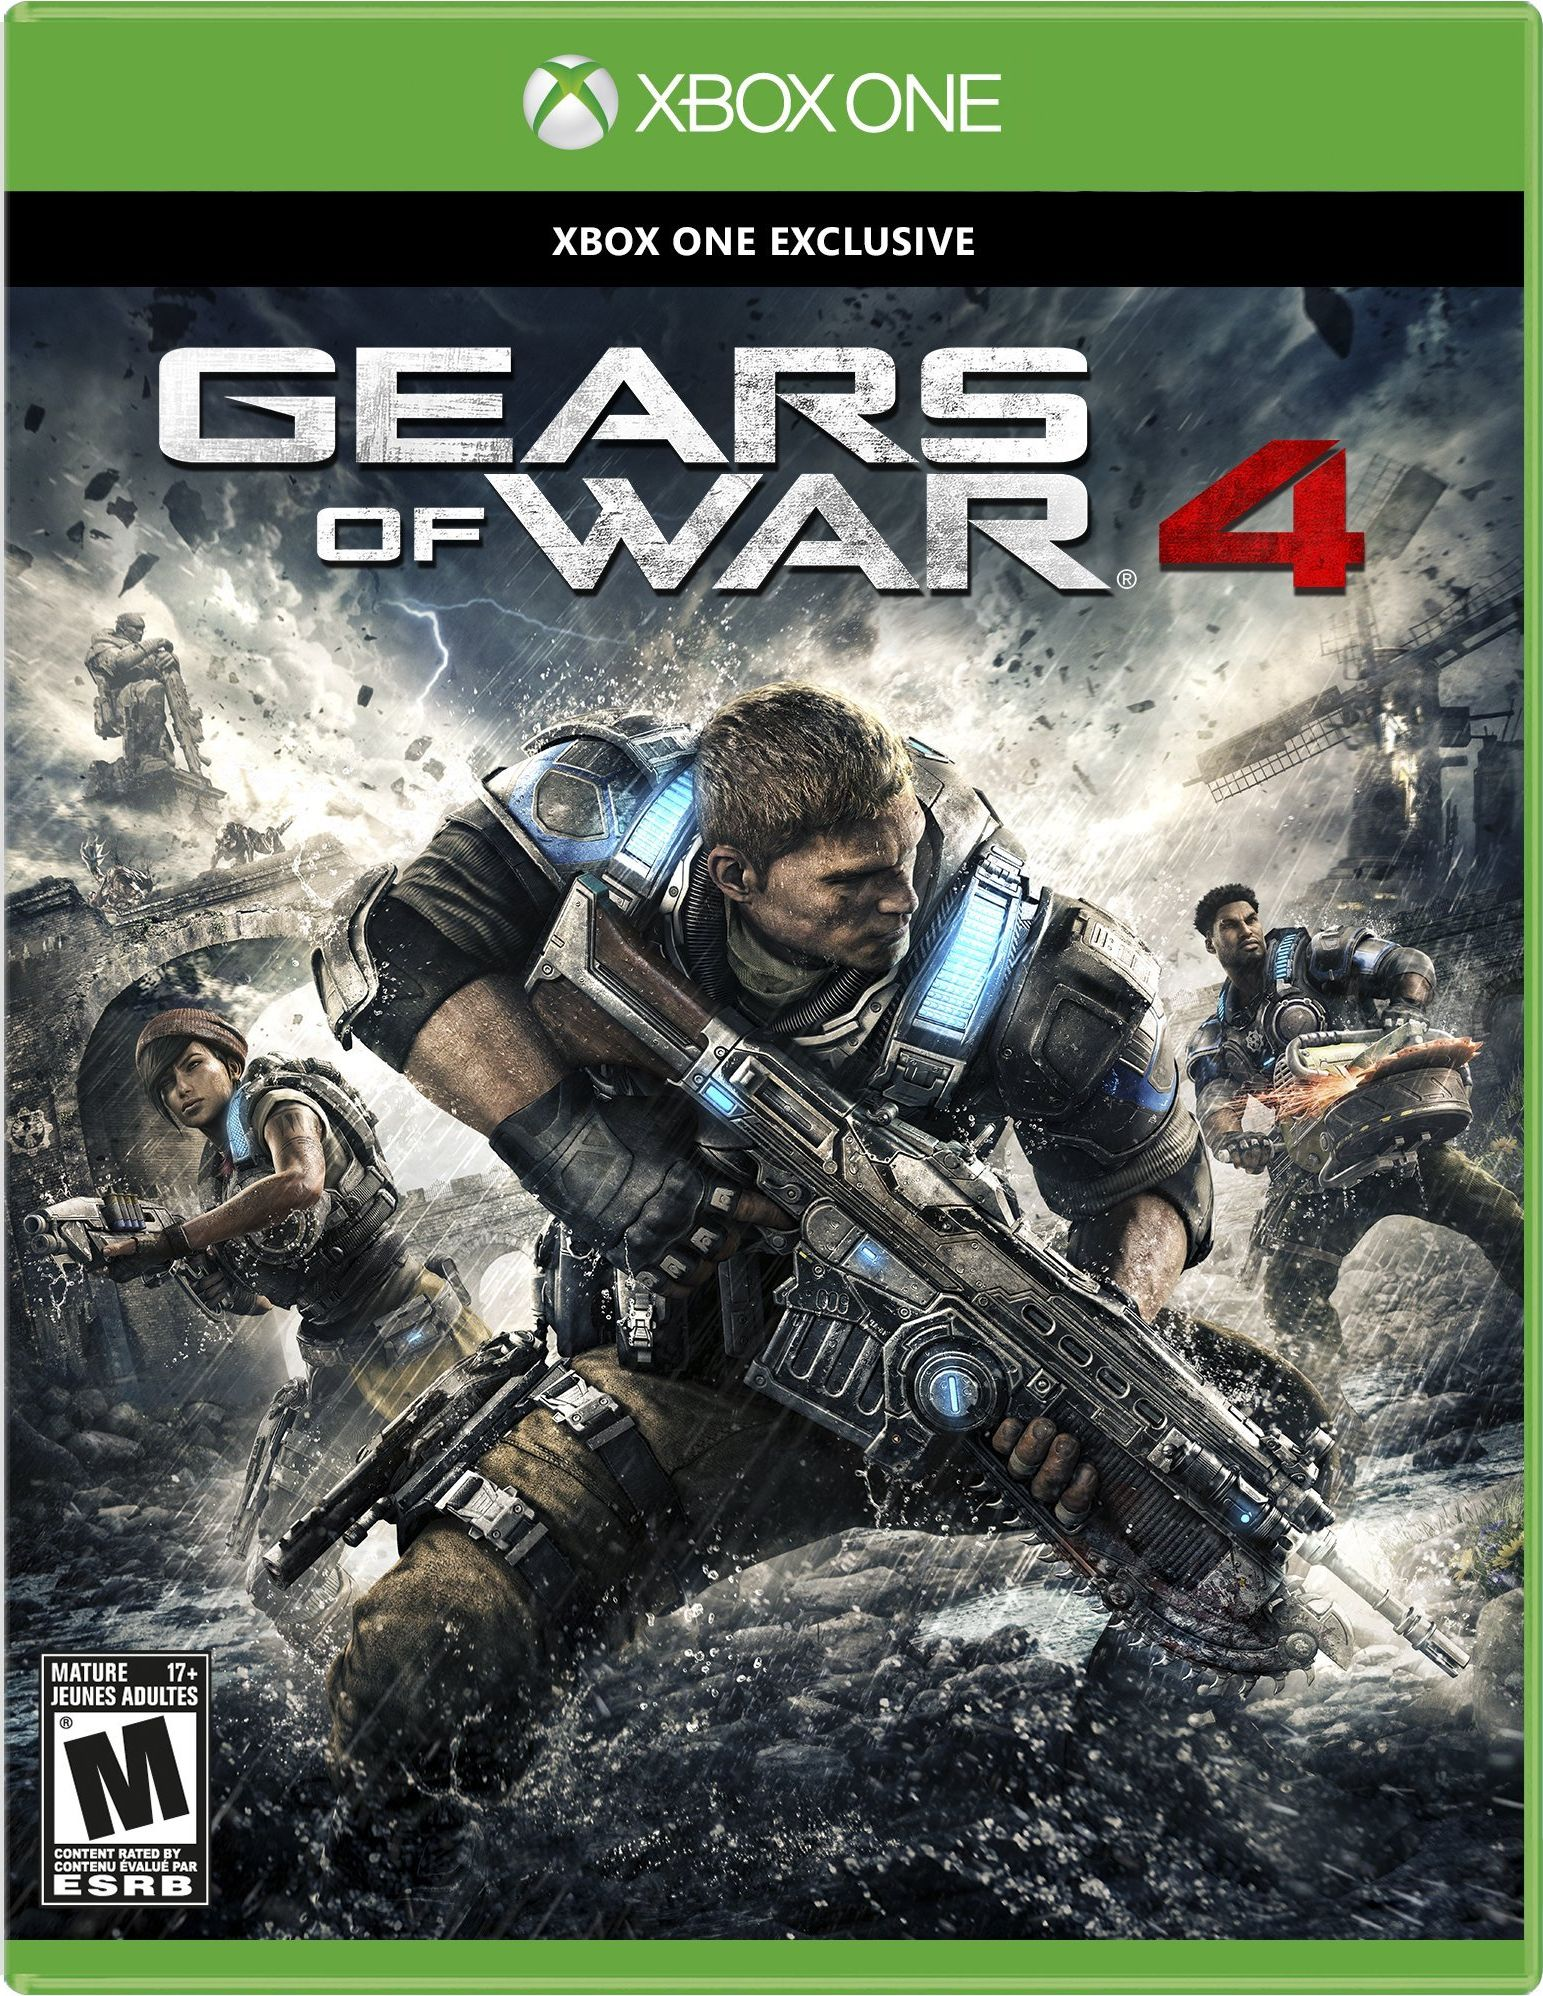 Gears of war release date in Perth